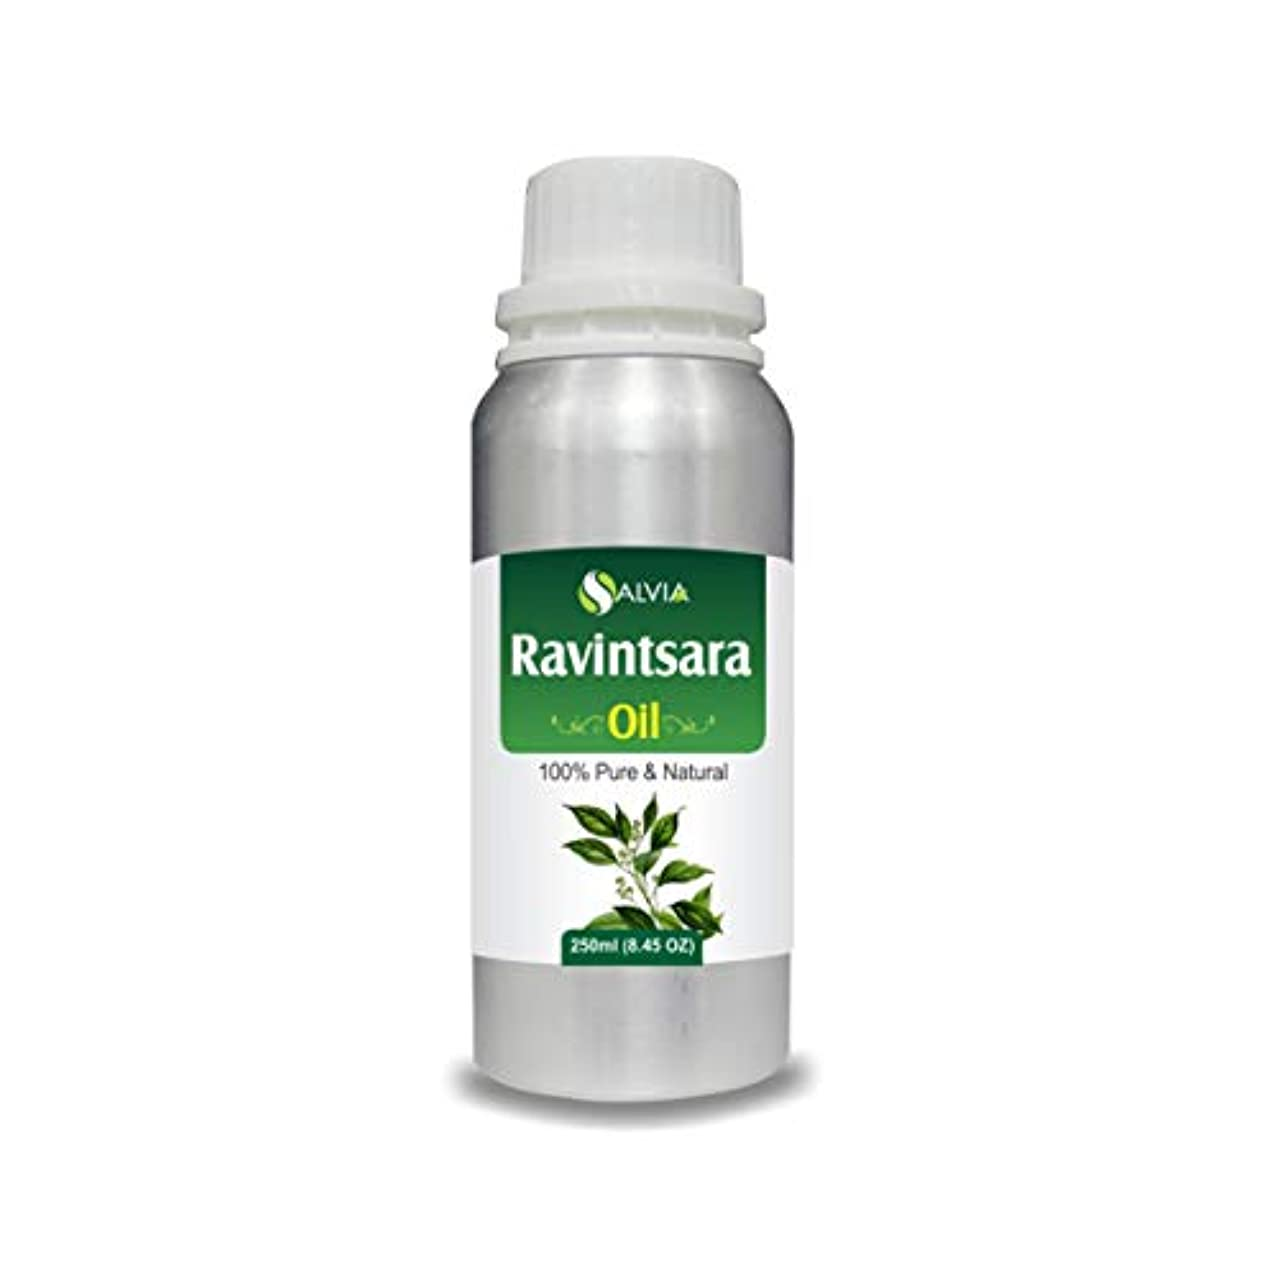 夢中熱狂的な恐ろしいRavintsara Oil (Cinnamomum camphora) 100% Natural Pure Undiluted Uncut Essential Oil 250ml